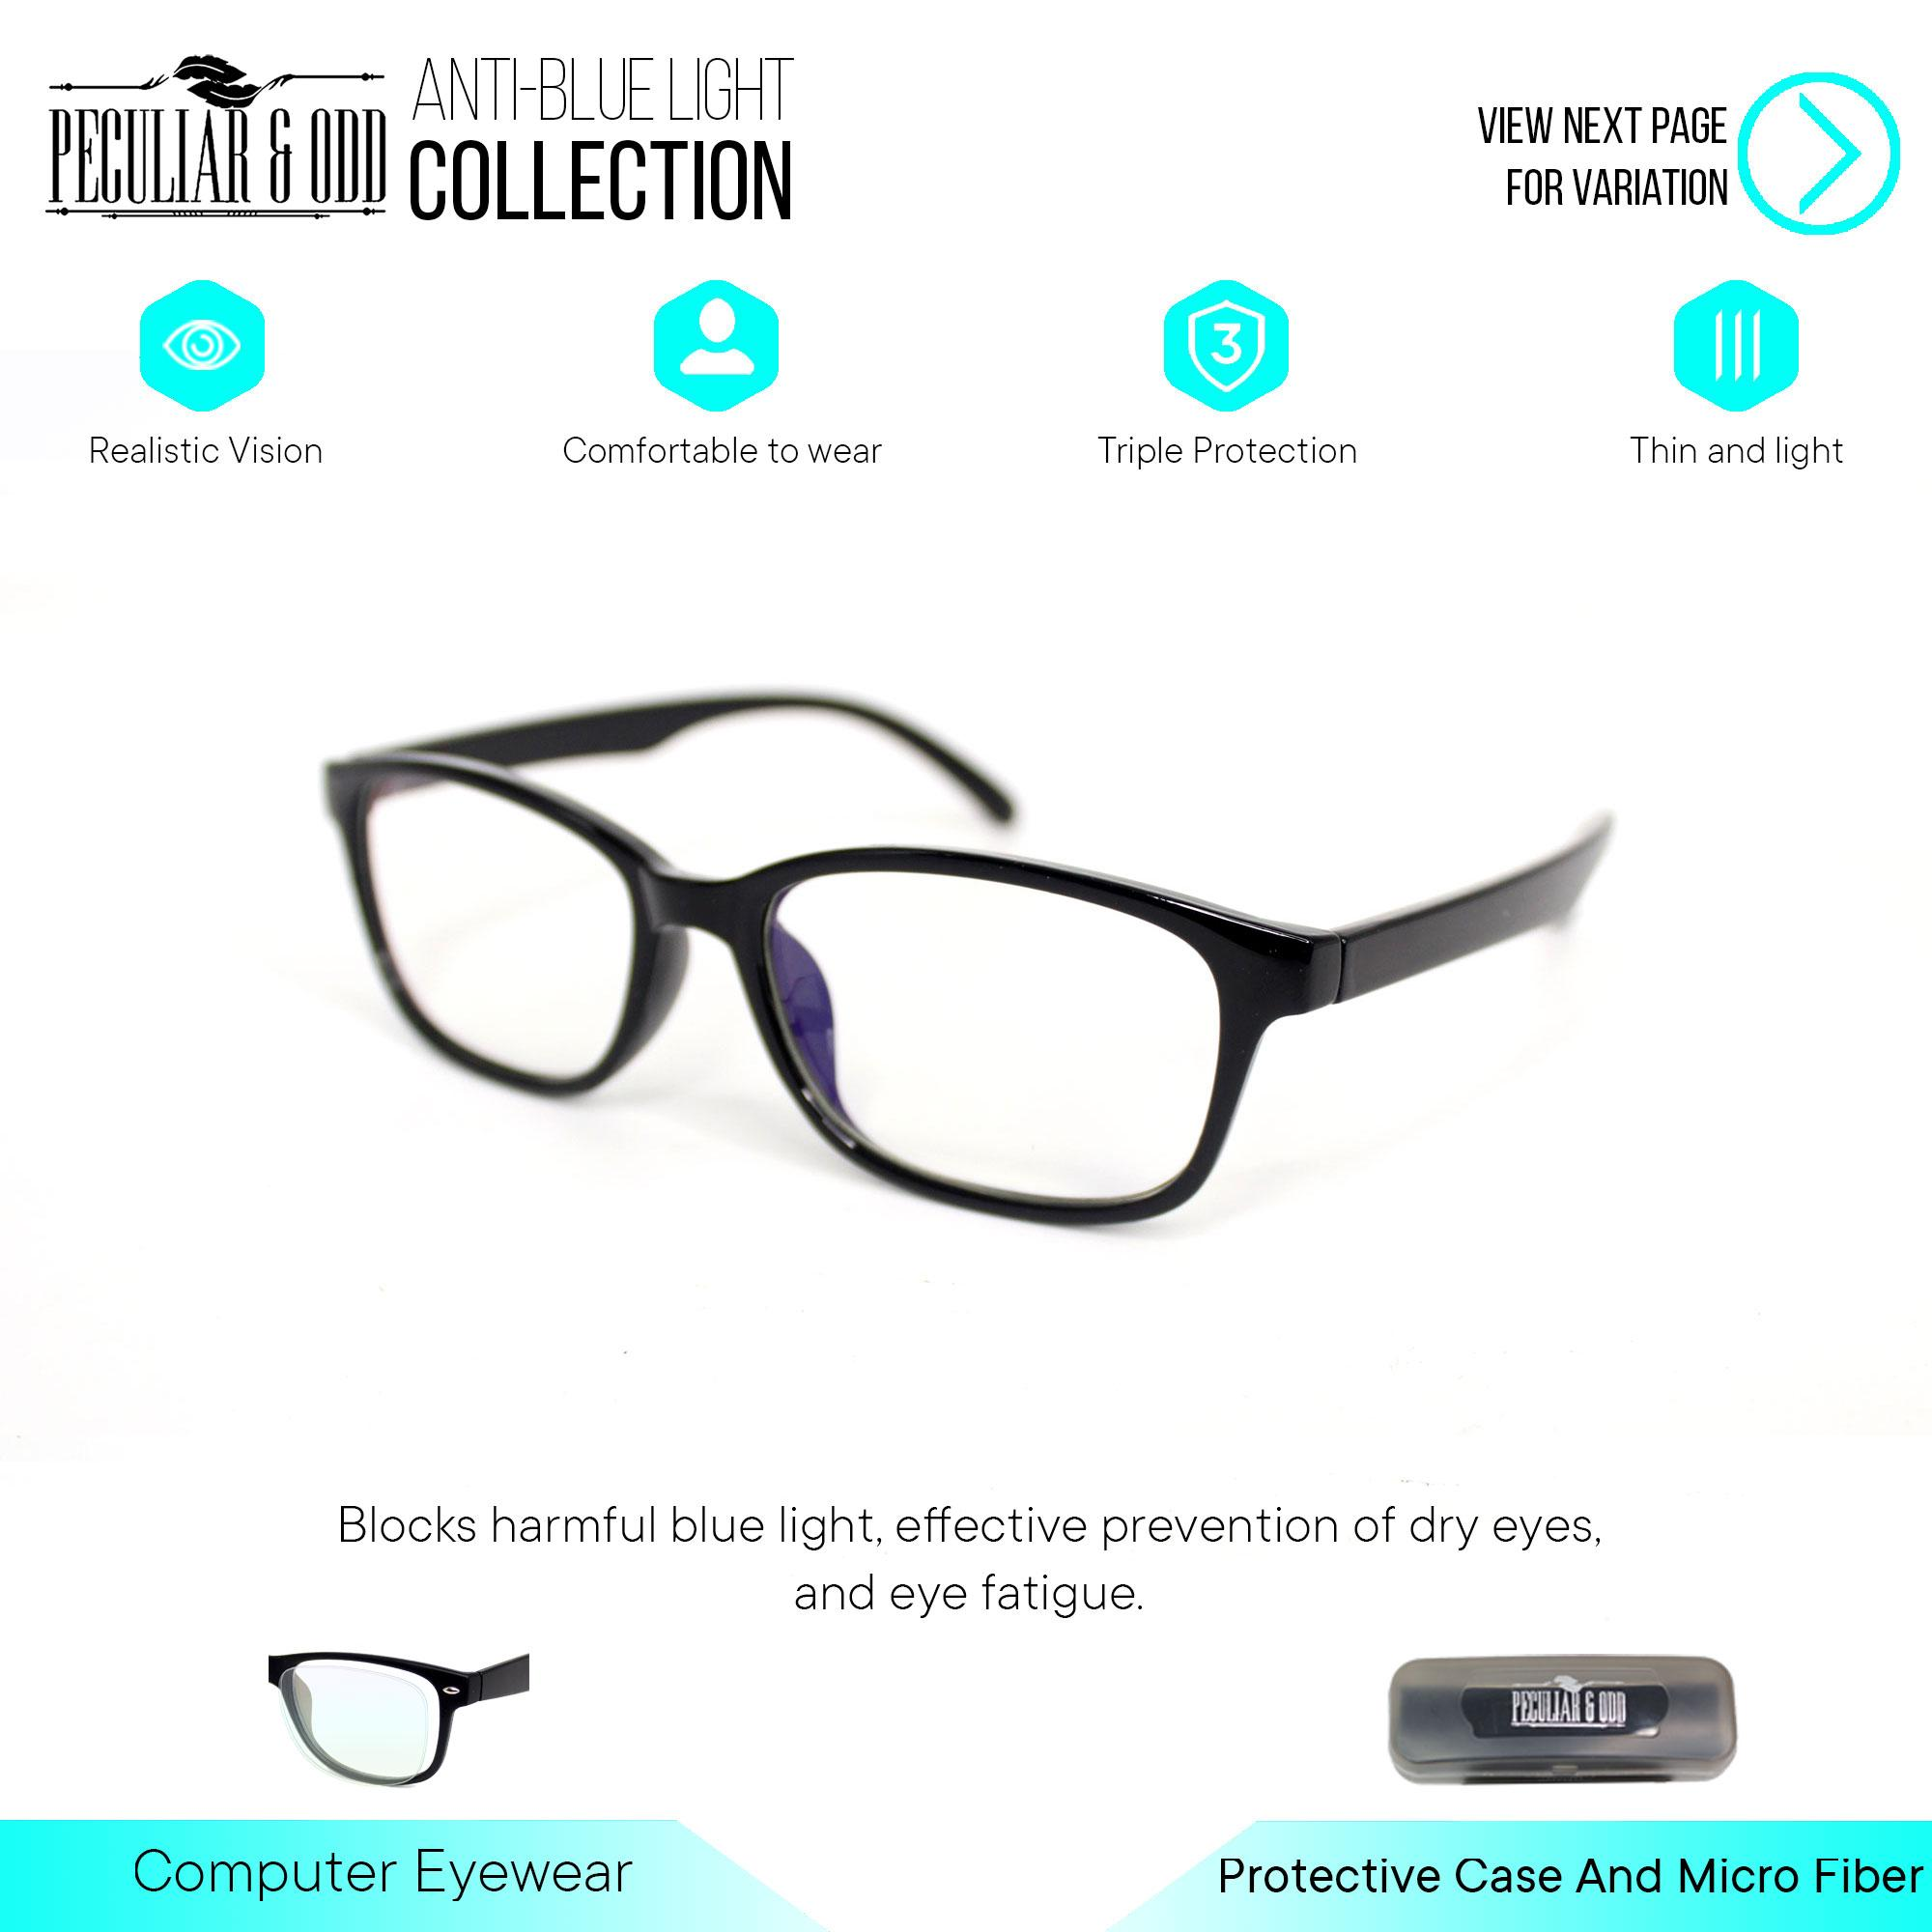 580852b9d80f Peculiar Square 3028 CoalBlackClear Anti Radiation Computer Eyeglass  Optical Replaceable Eyewear Unisex new